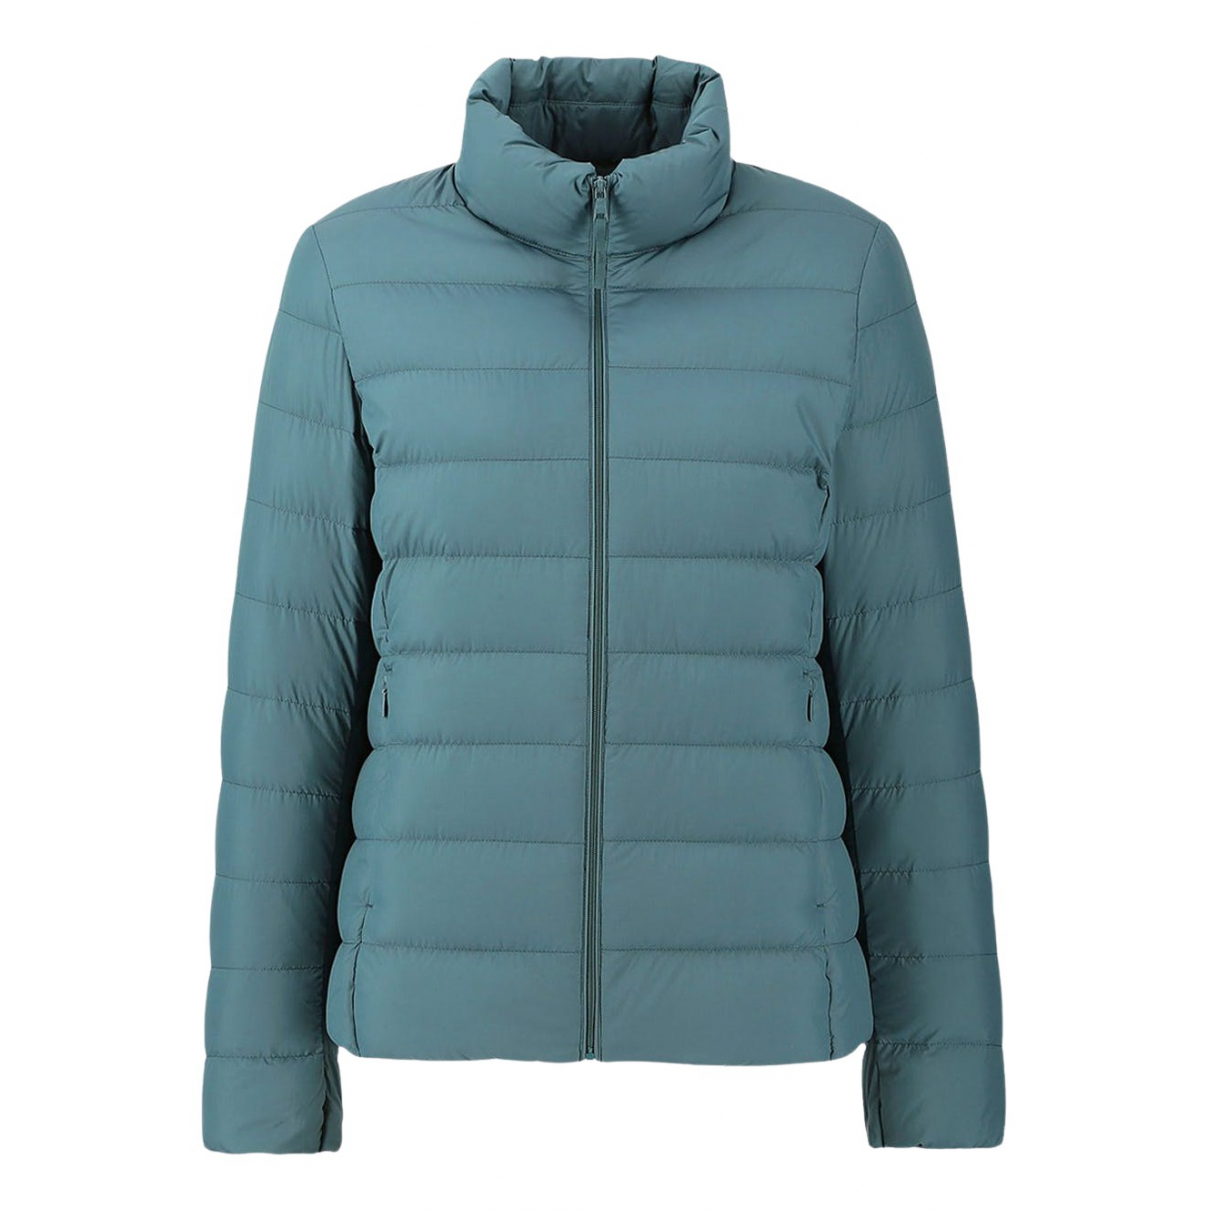 Uniqlo \N Jacke in Polyester